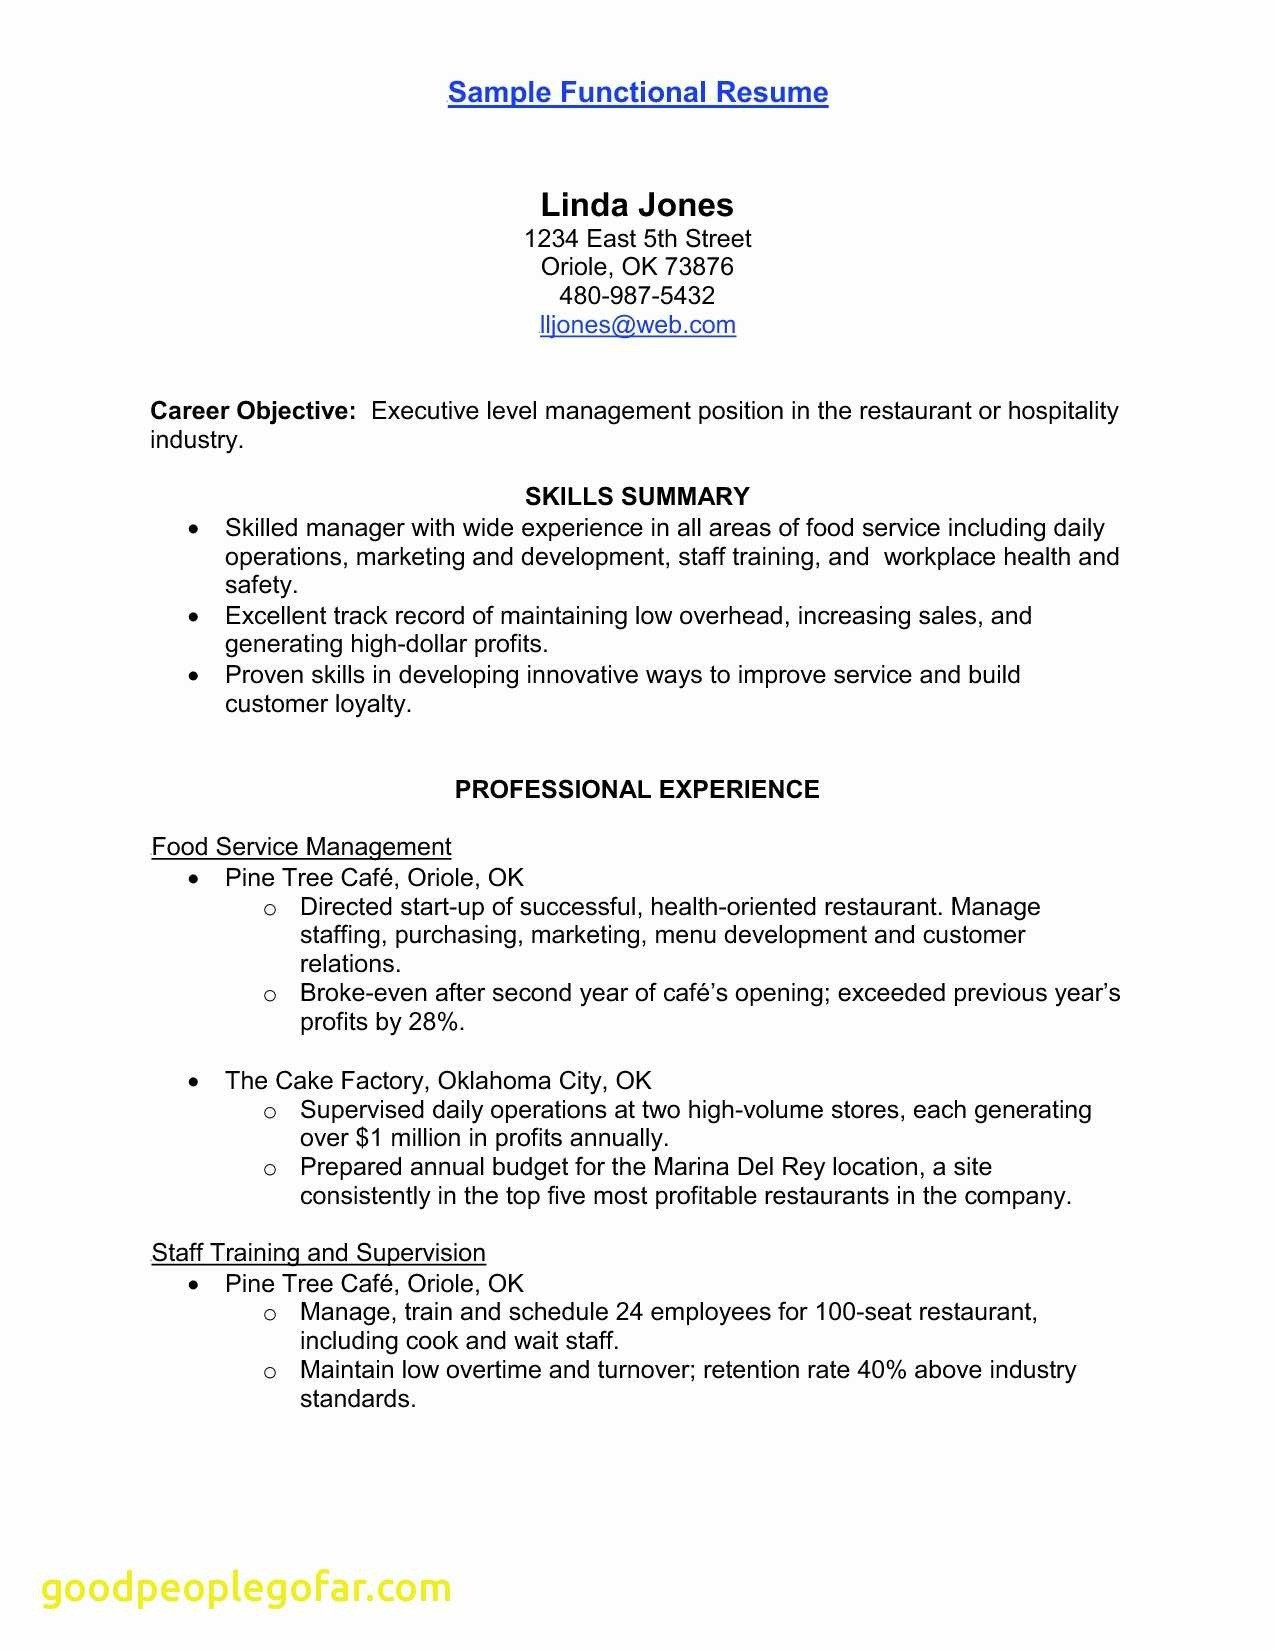 Electrical Engineering Entry Level Resume - Electrical Engineer Resume Ressume Template Lovely Type Resume